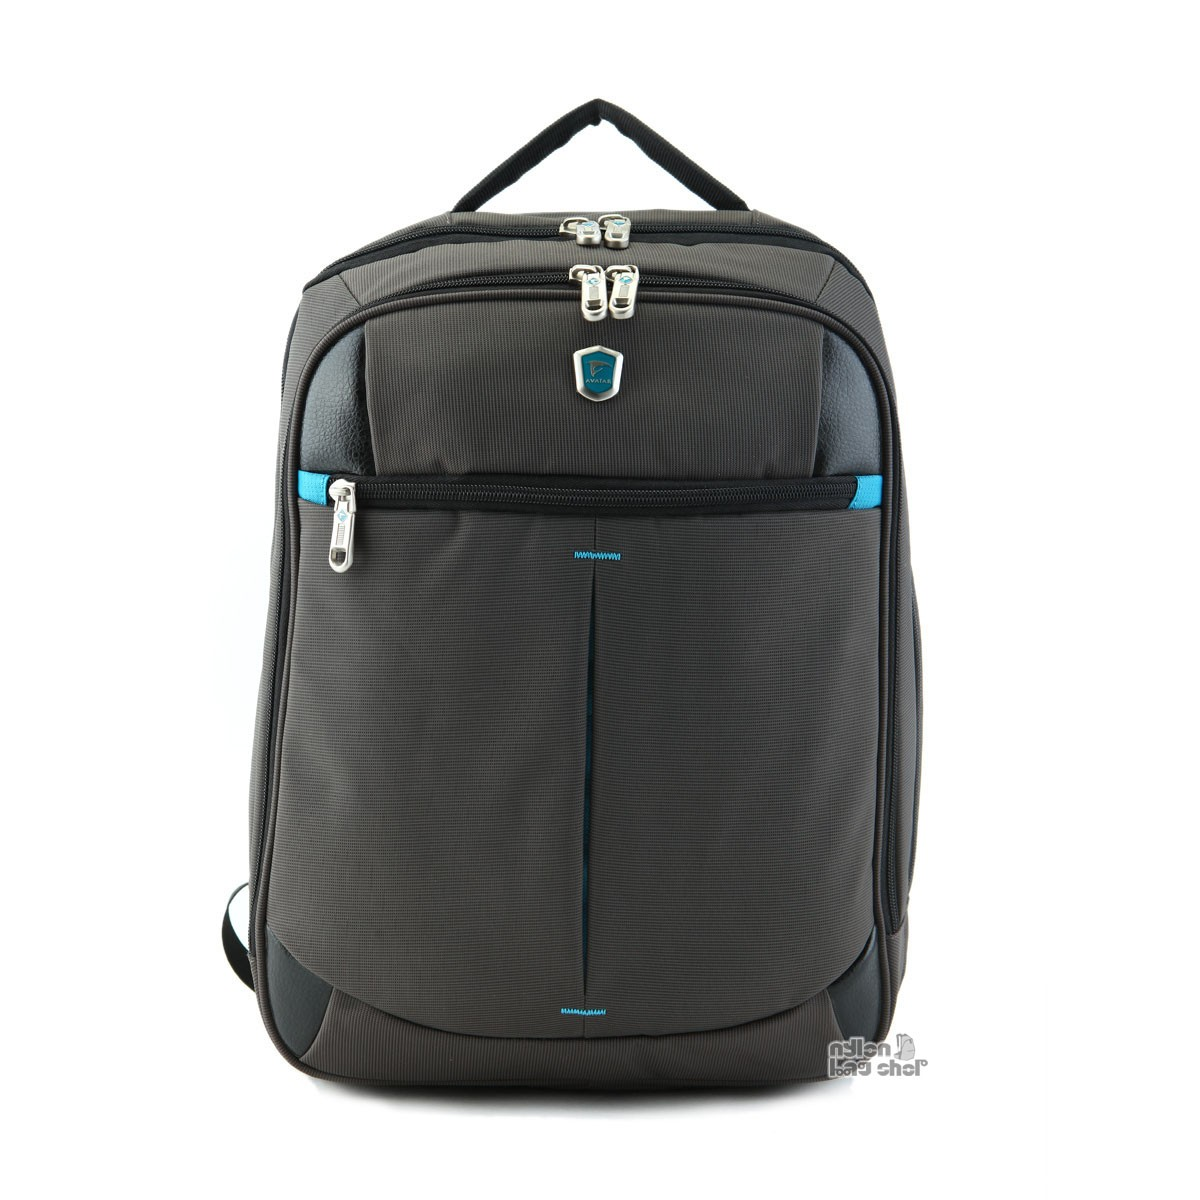 Backpack Laptop Bag bvuYjp1Q